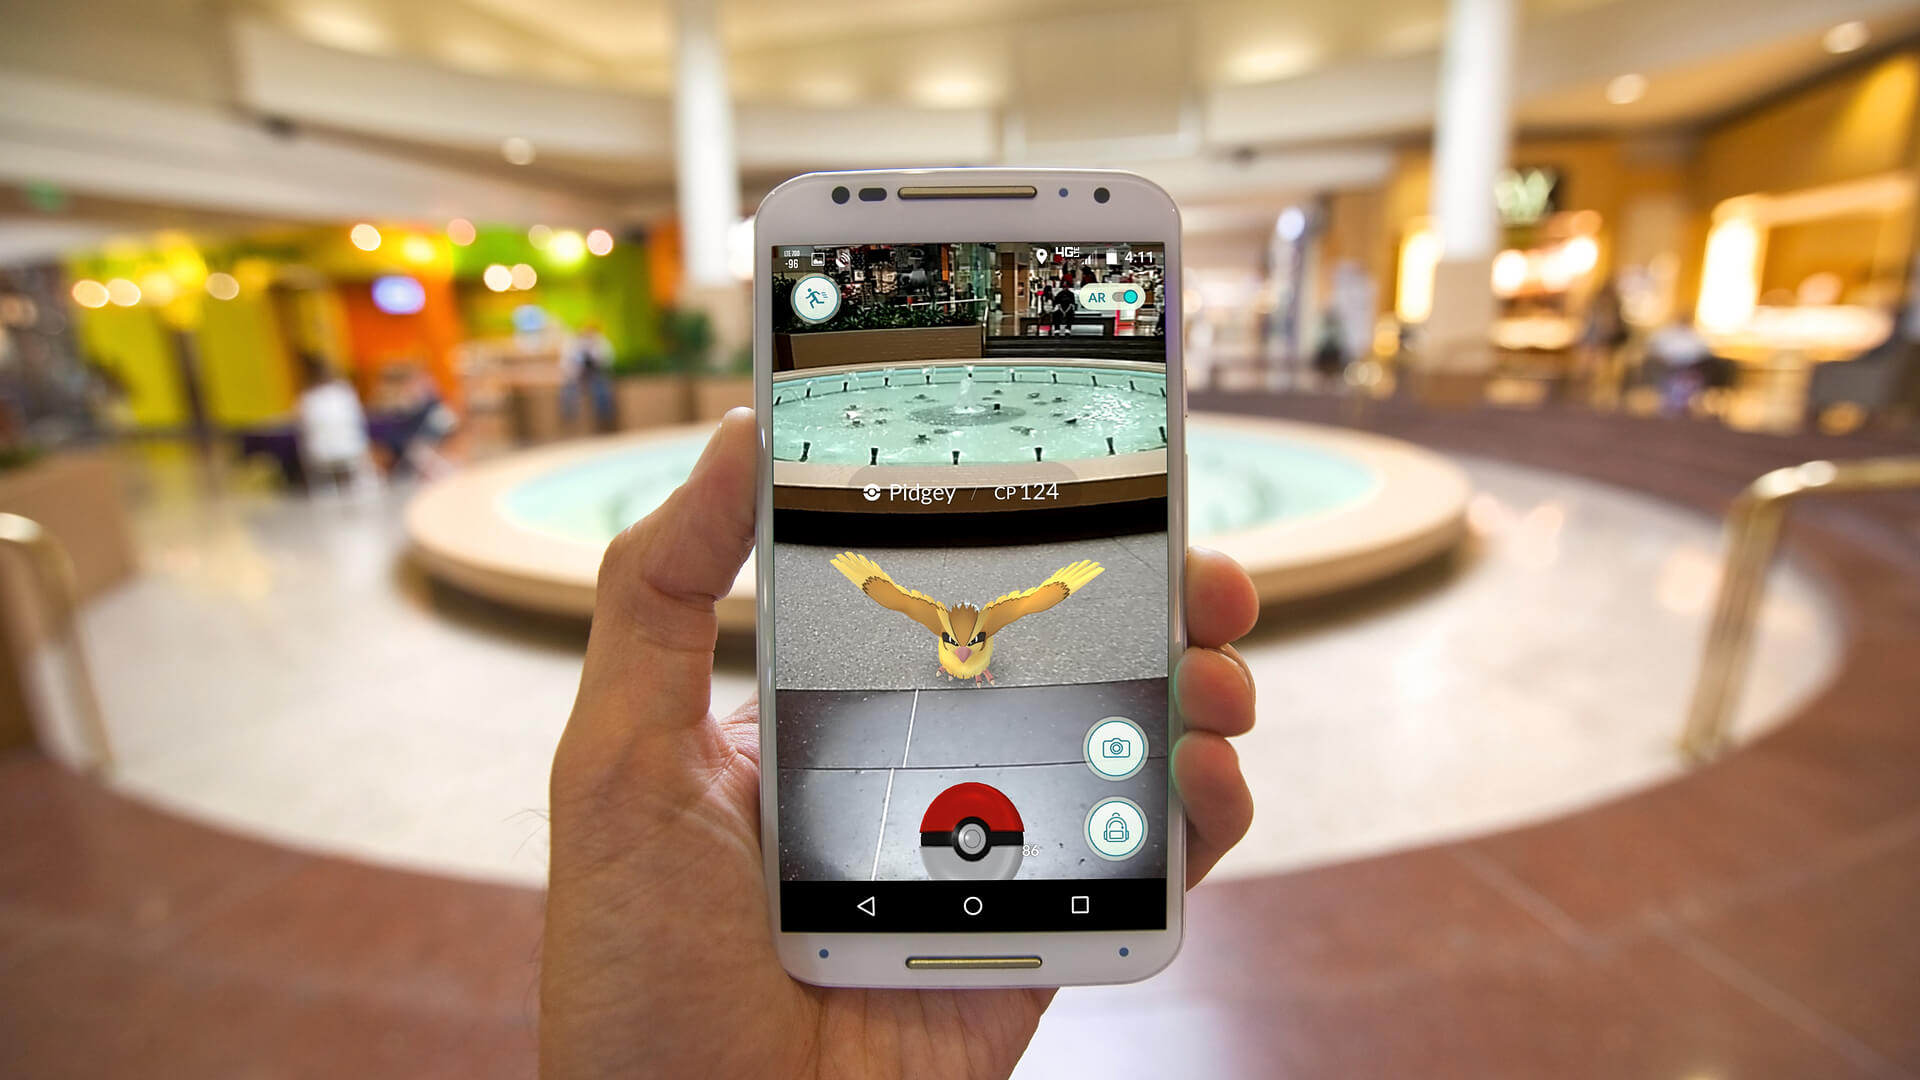 pokemon-go-local-business-mall-ss-1920